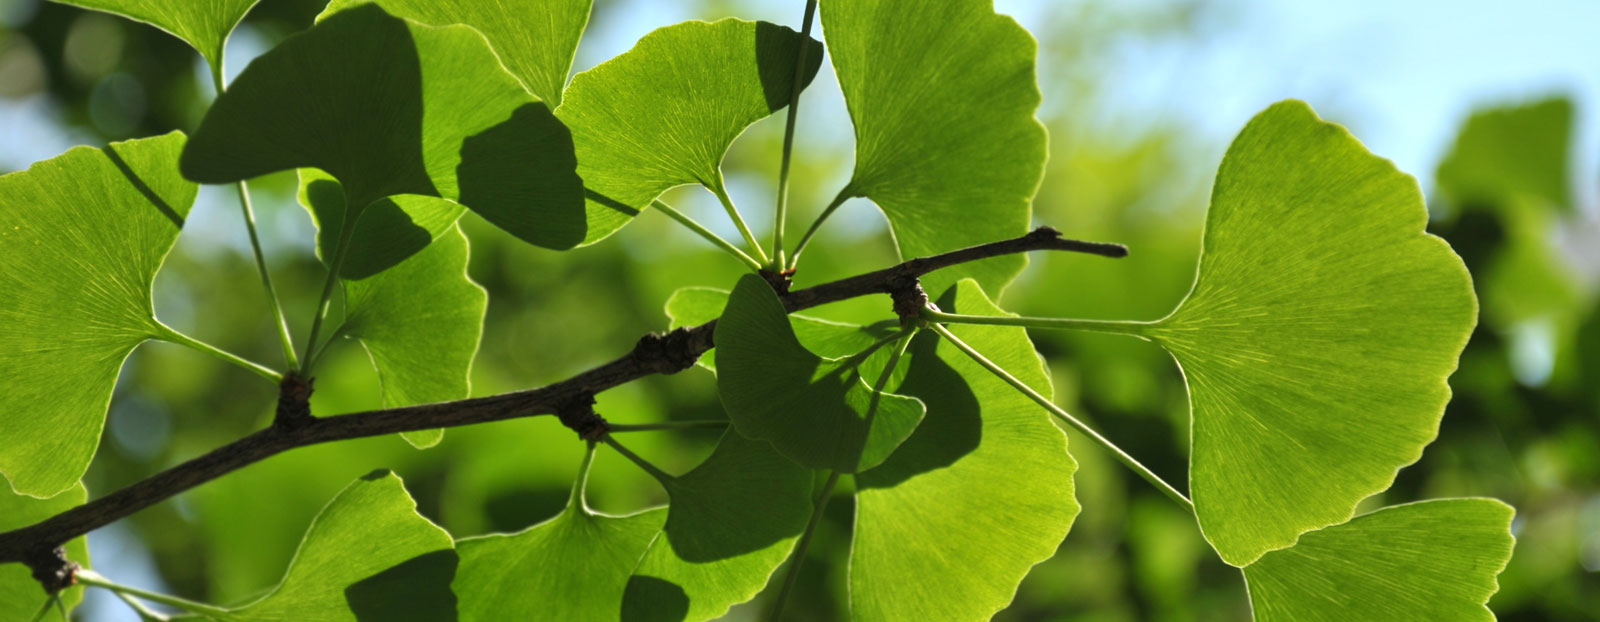 Ginkgo biloba in its natural habitat